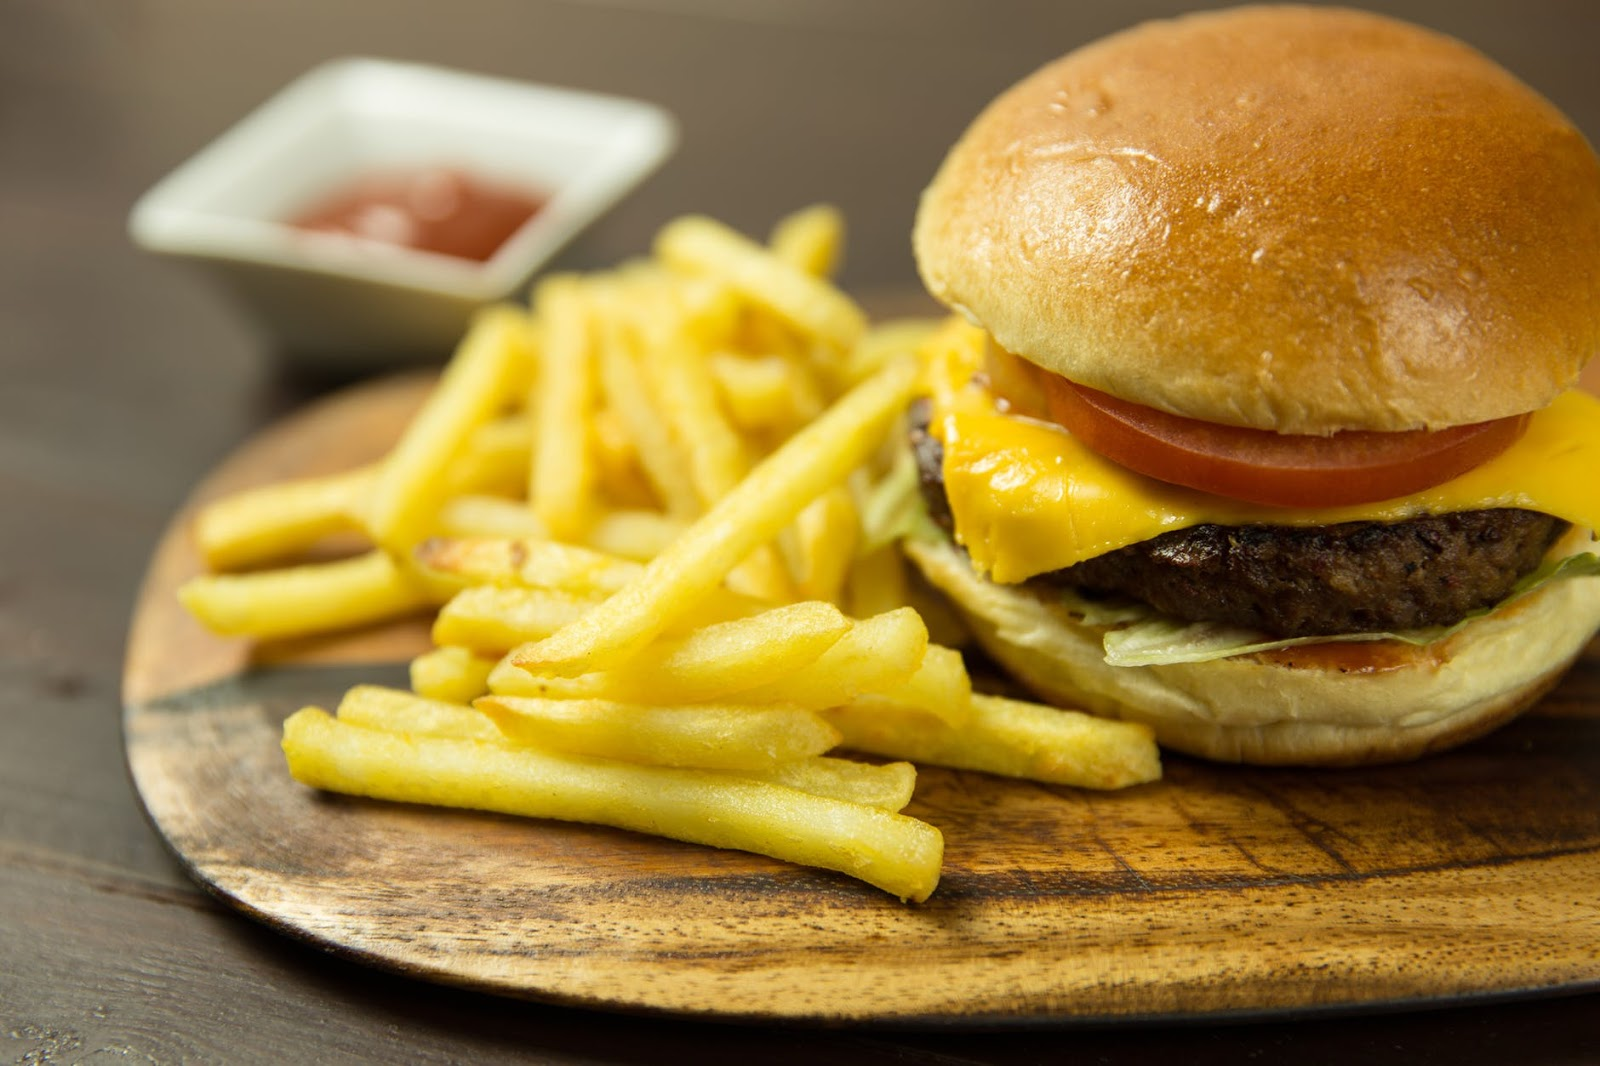 cheeseburger and fries on a wooden tray from Landing Tavern